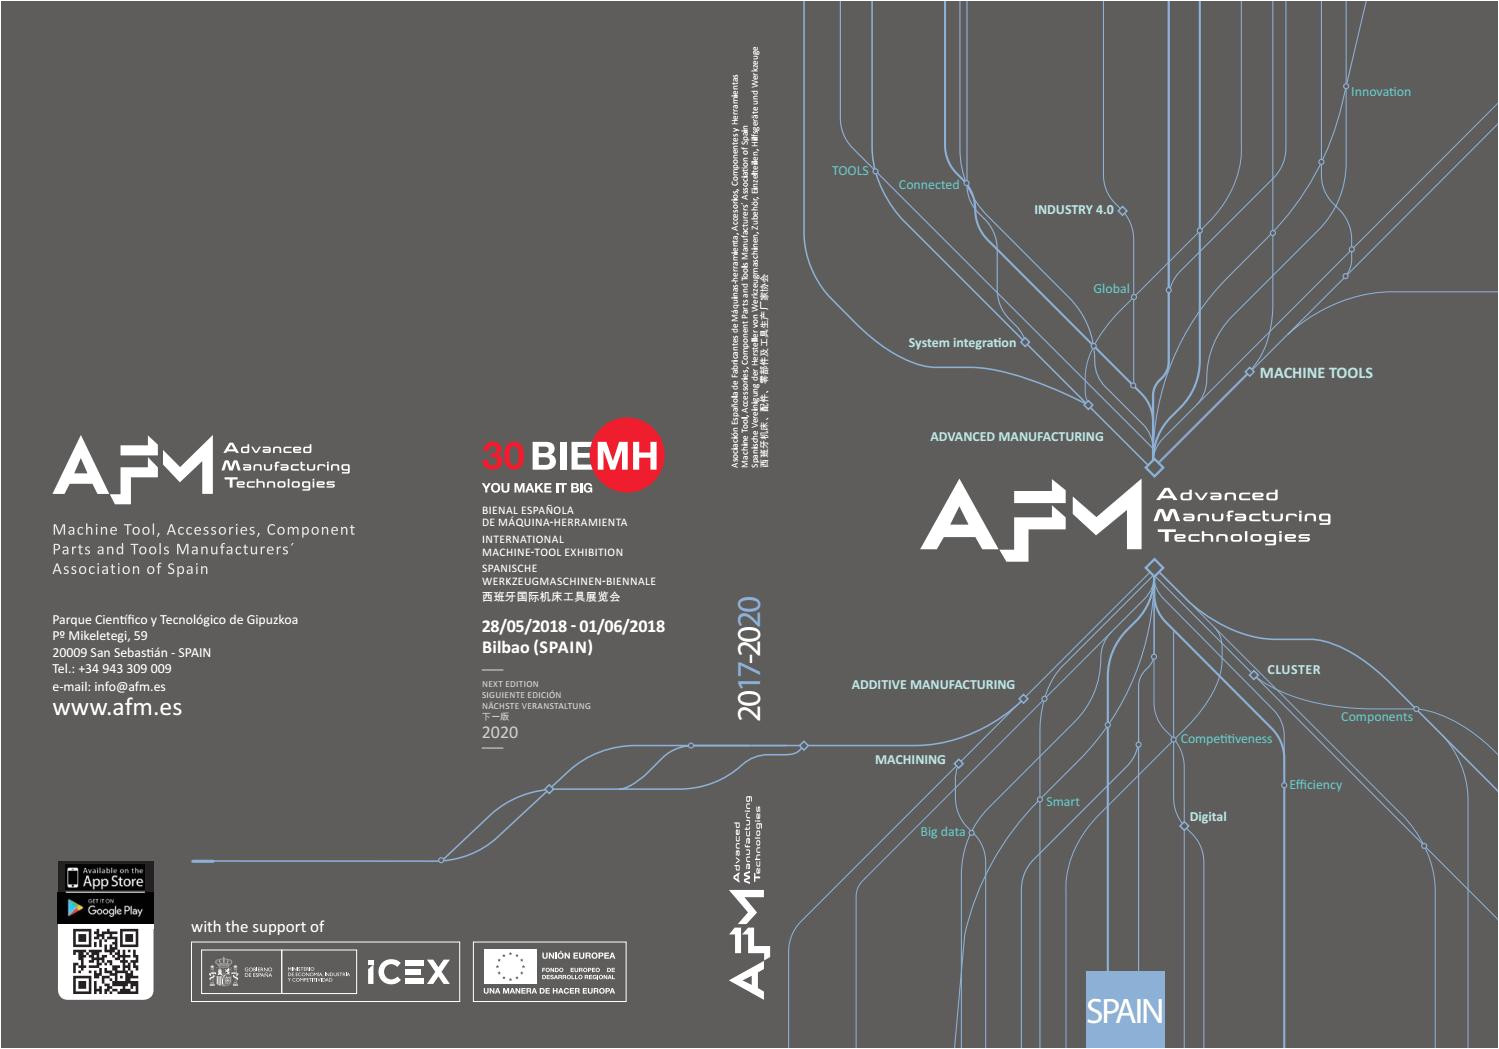 catalogo general afm 2017 2020 by afm advanced manufacturing technologies issuu